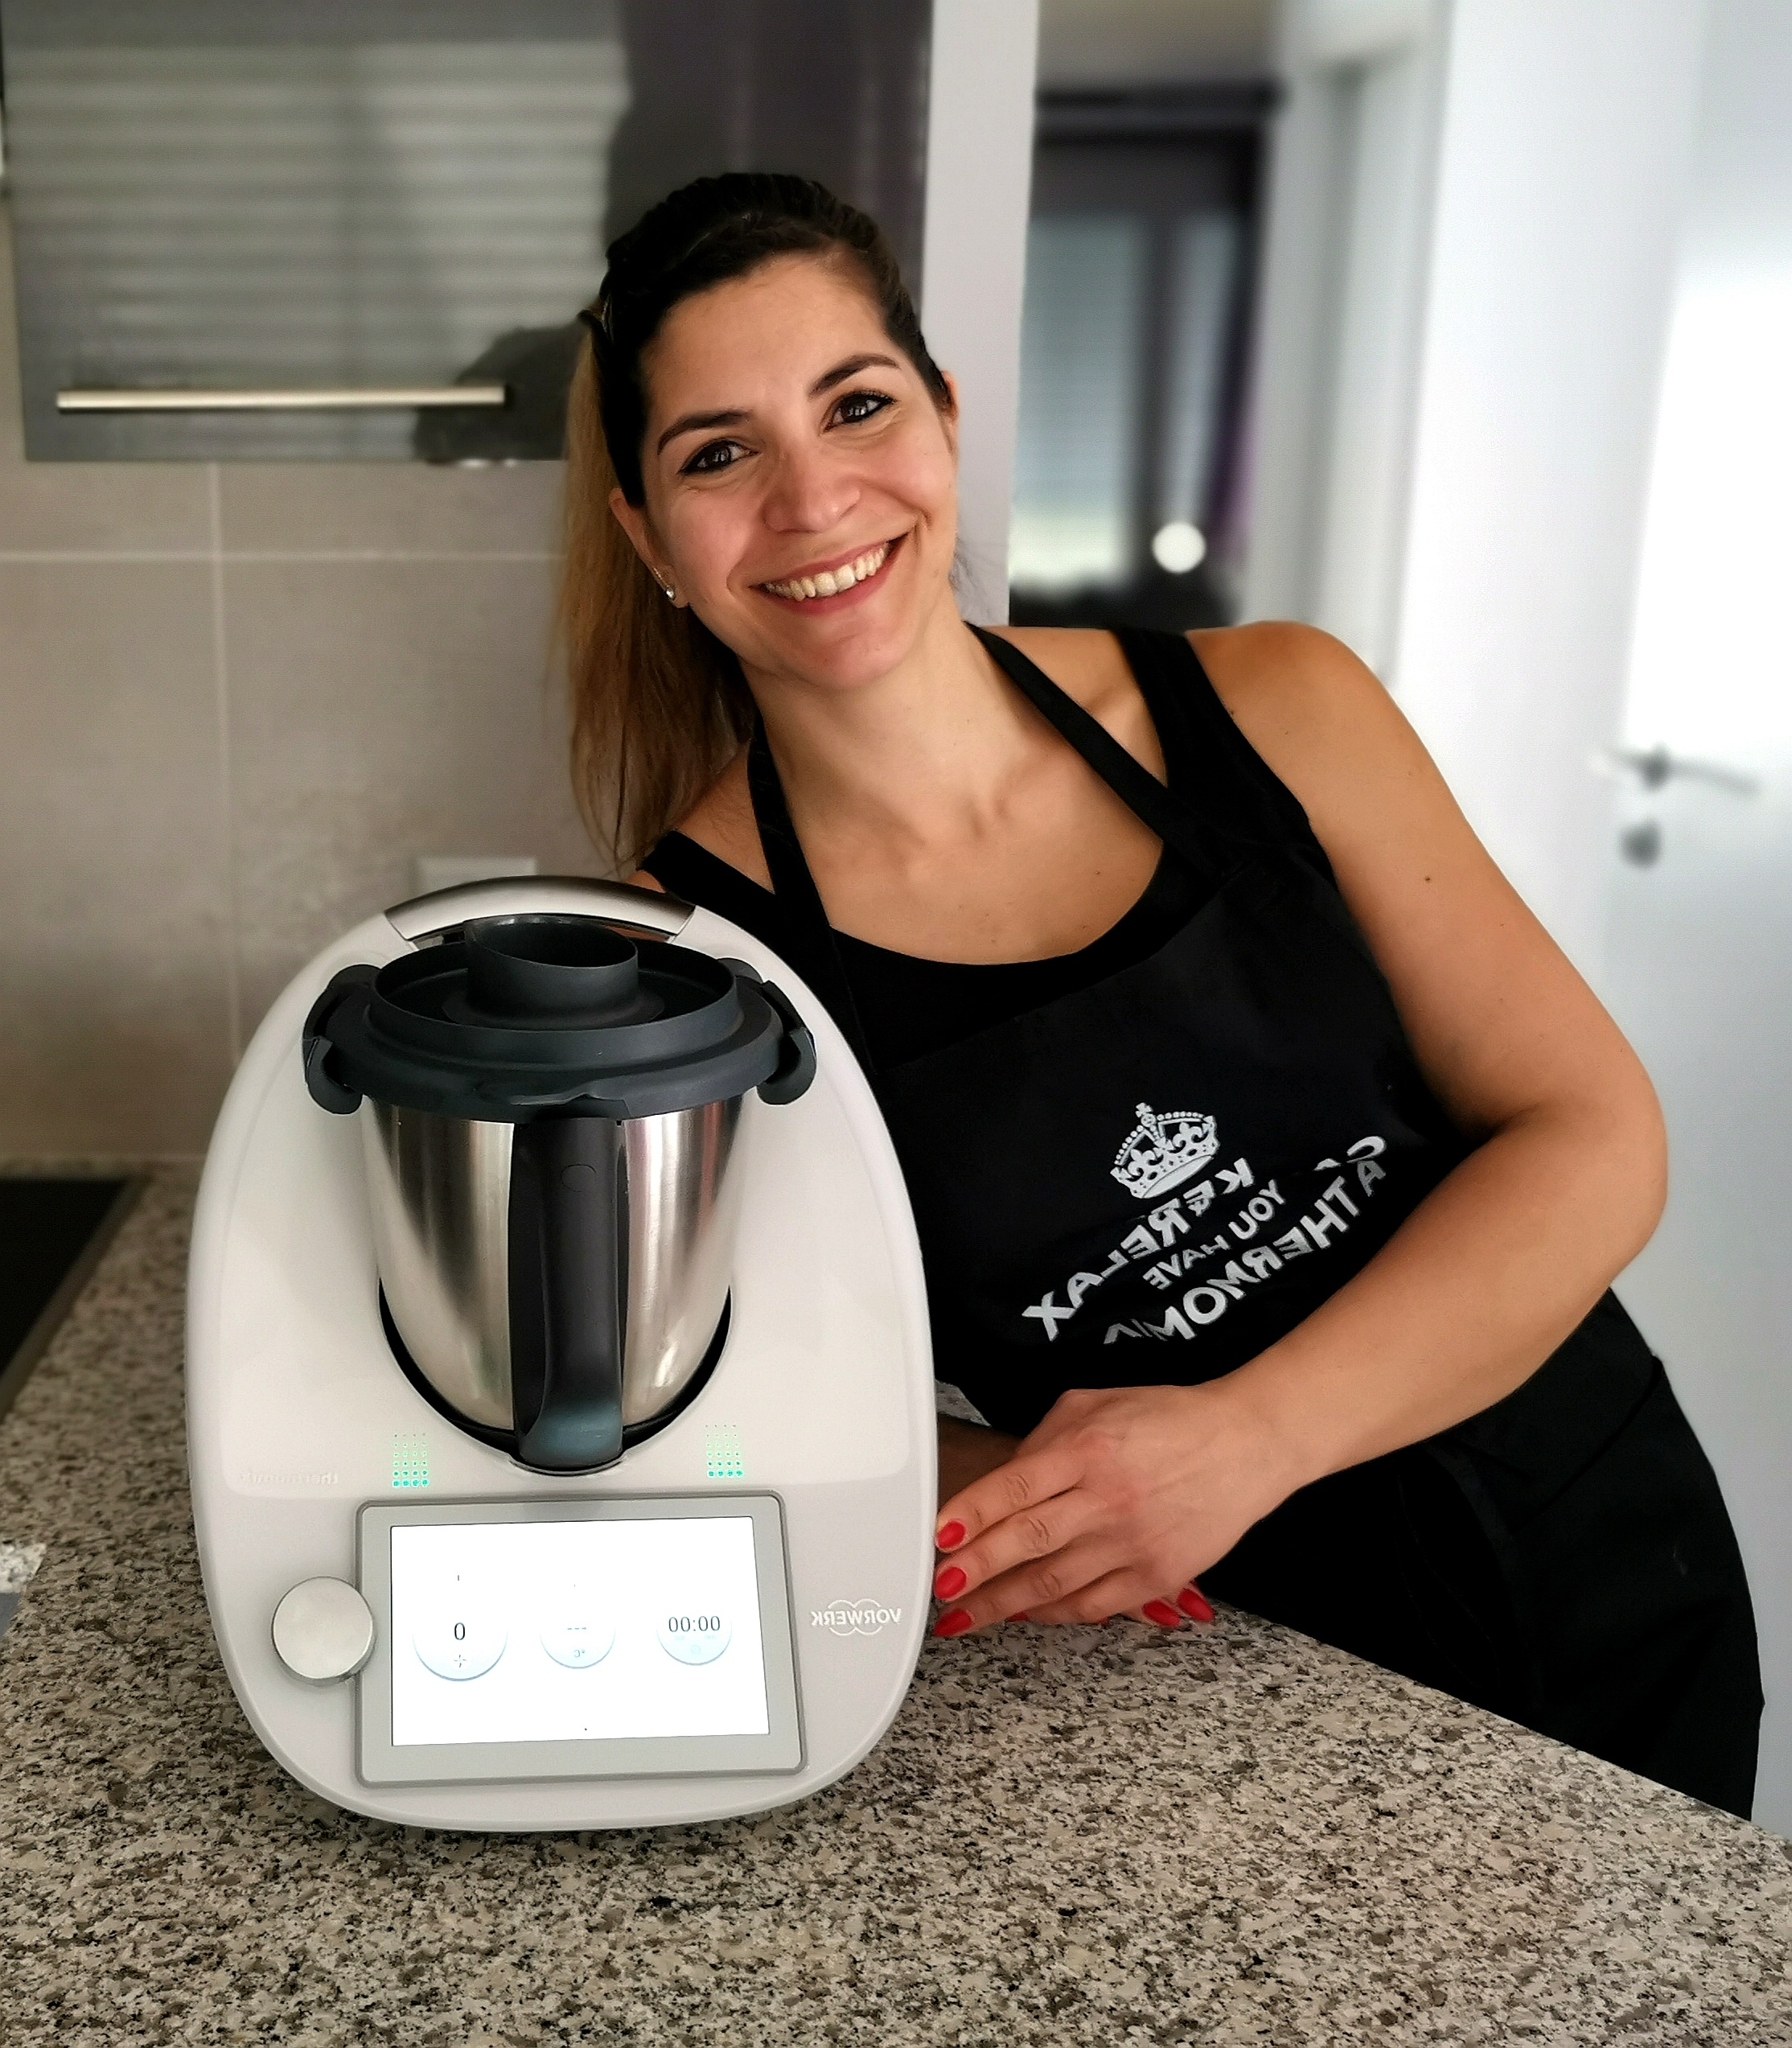 Achat du Thermomix®